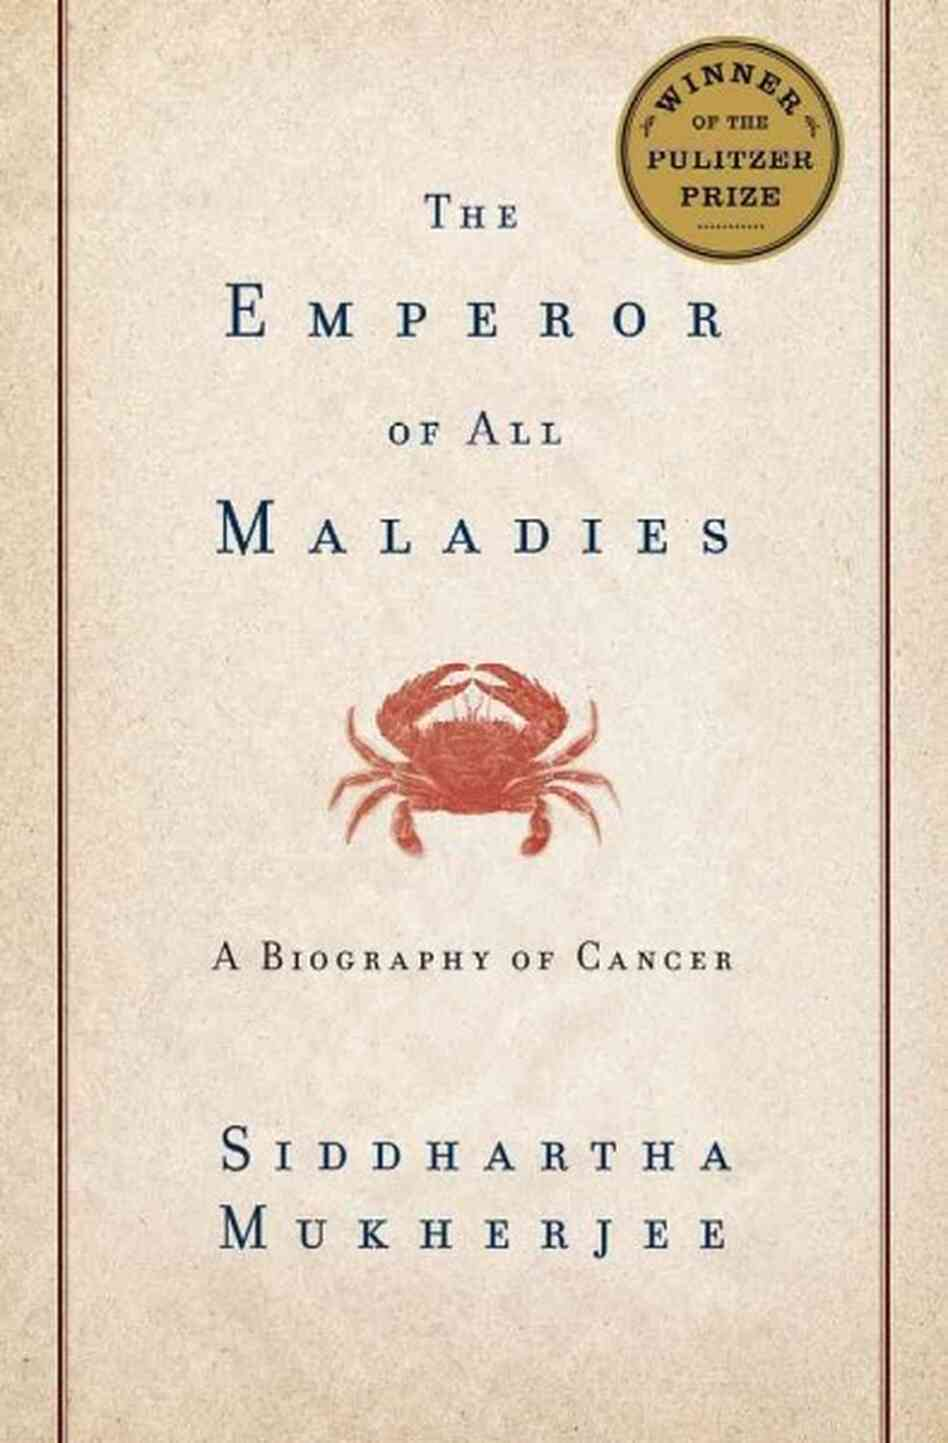 An Oncologist Writes A Biography Of Cancer Npr